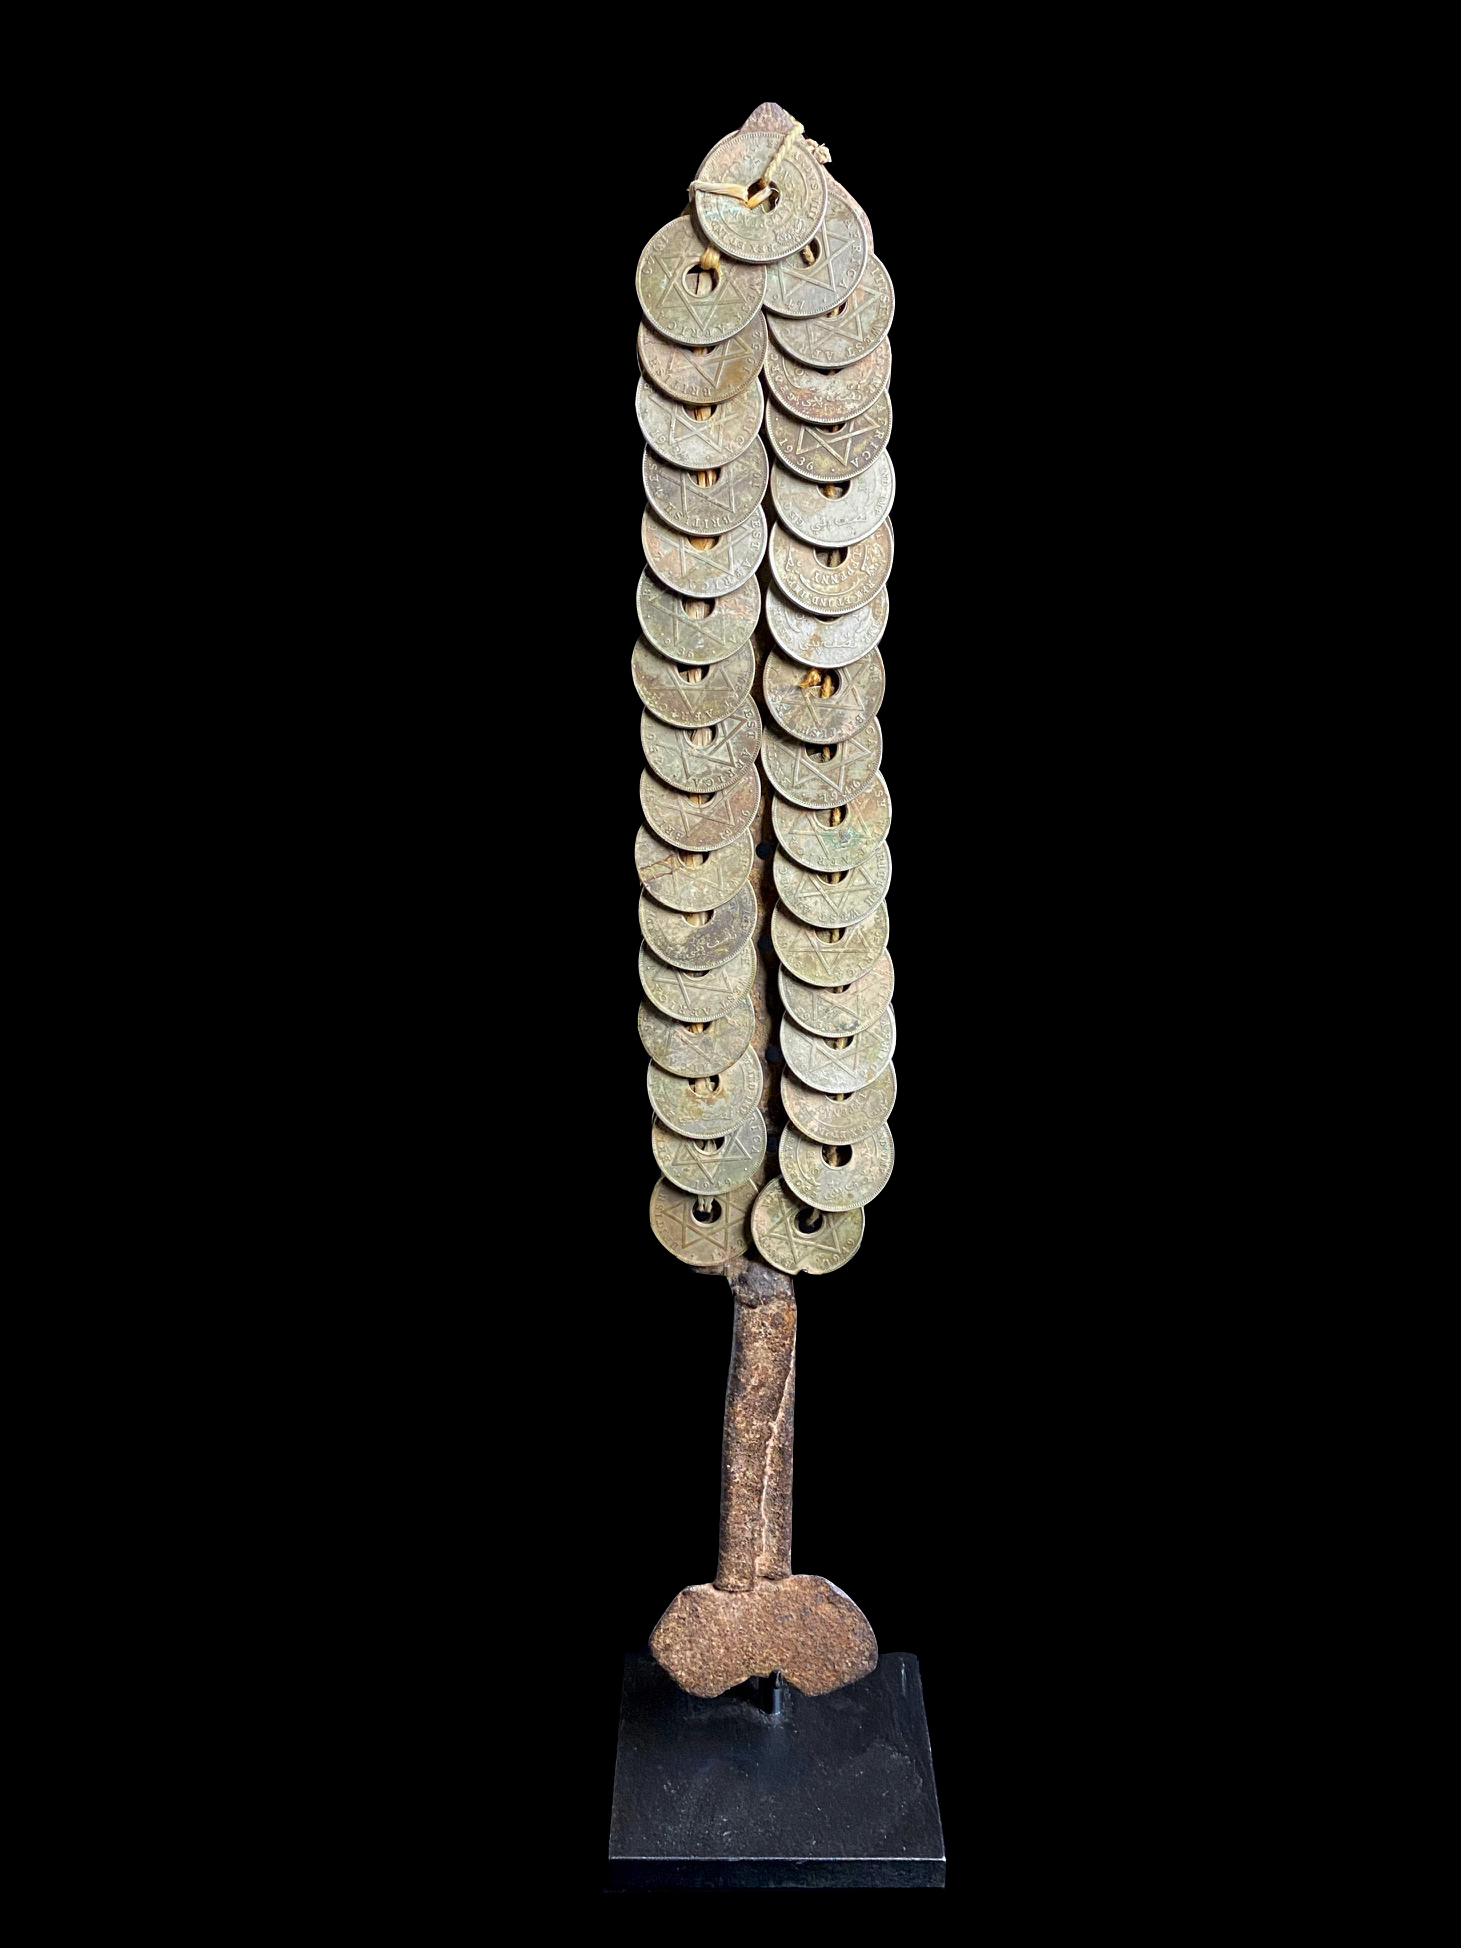 Wedding dance stick - Money tree currency - Yoruba People, Nigeria